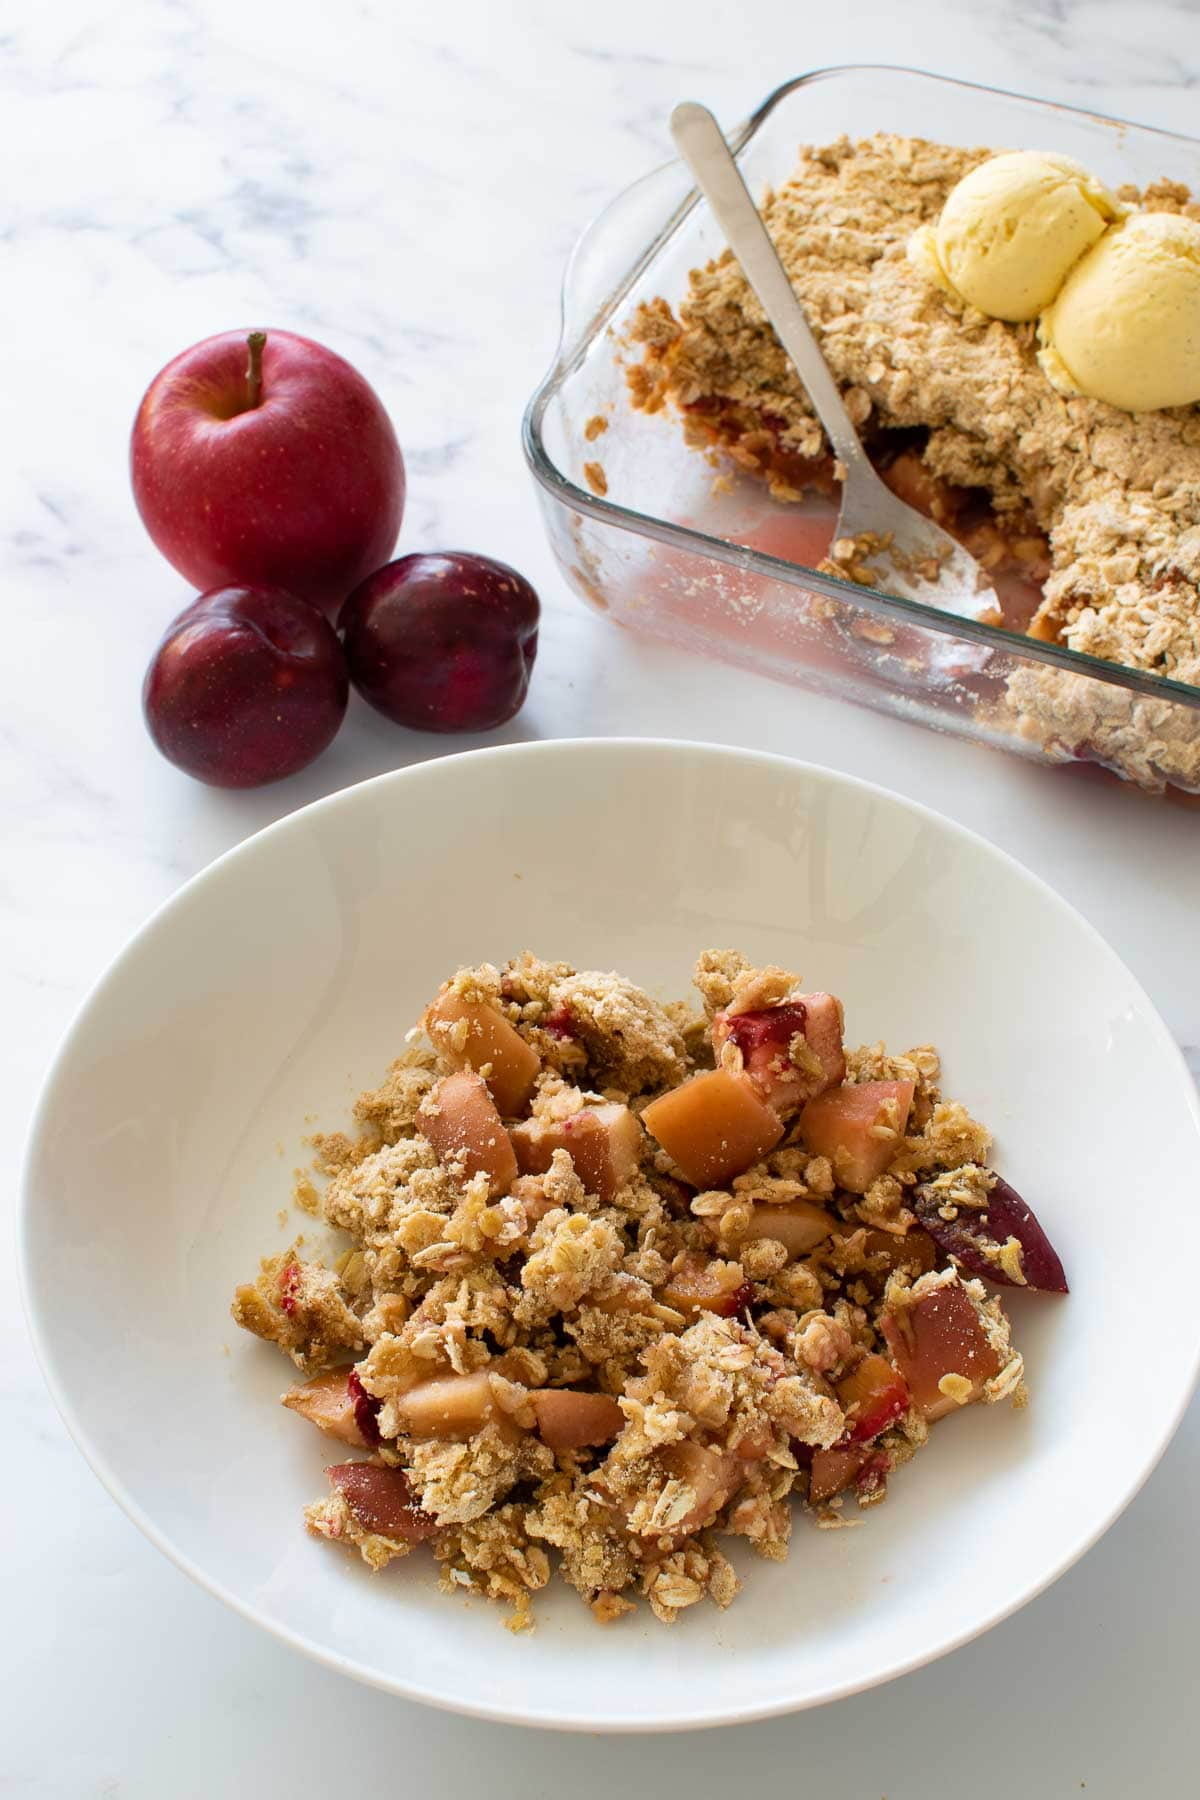 Apple crumble with plums in a bowl.